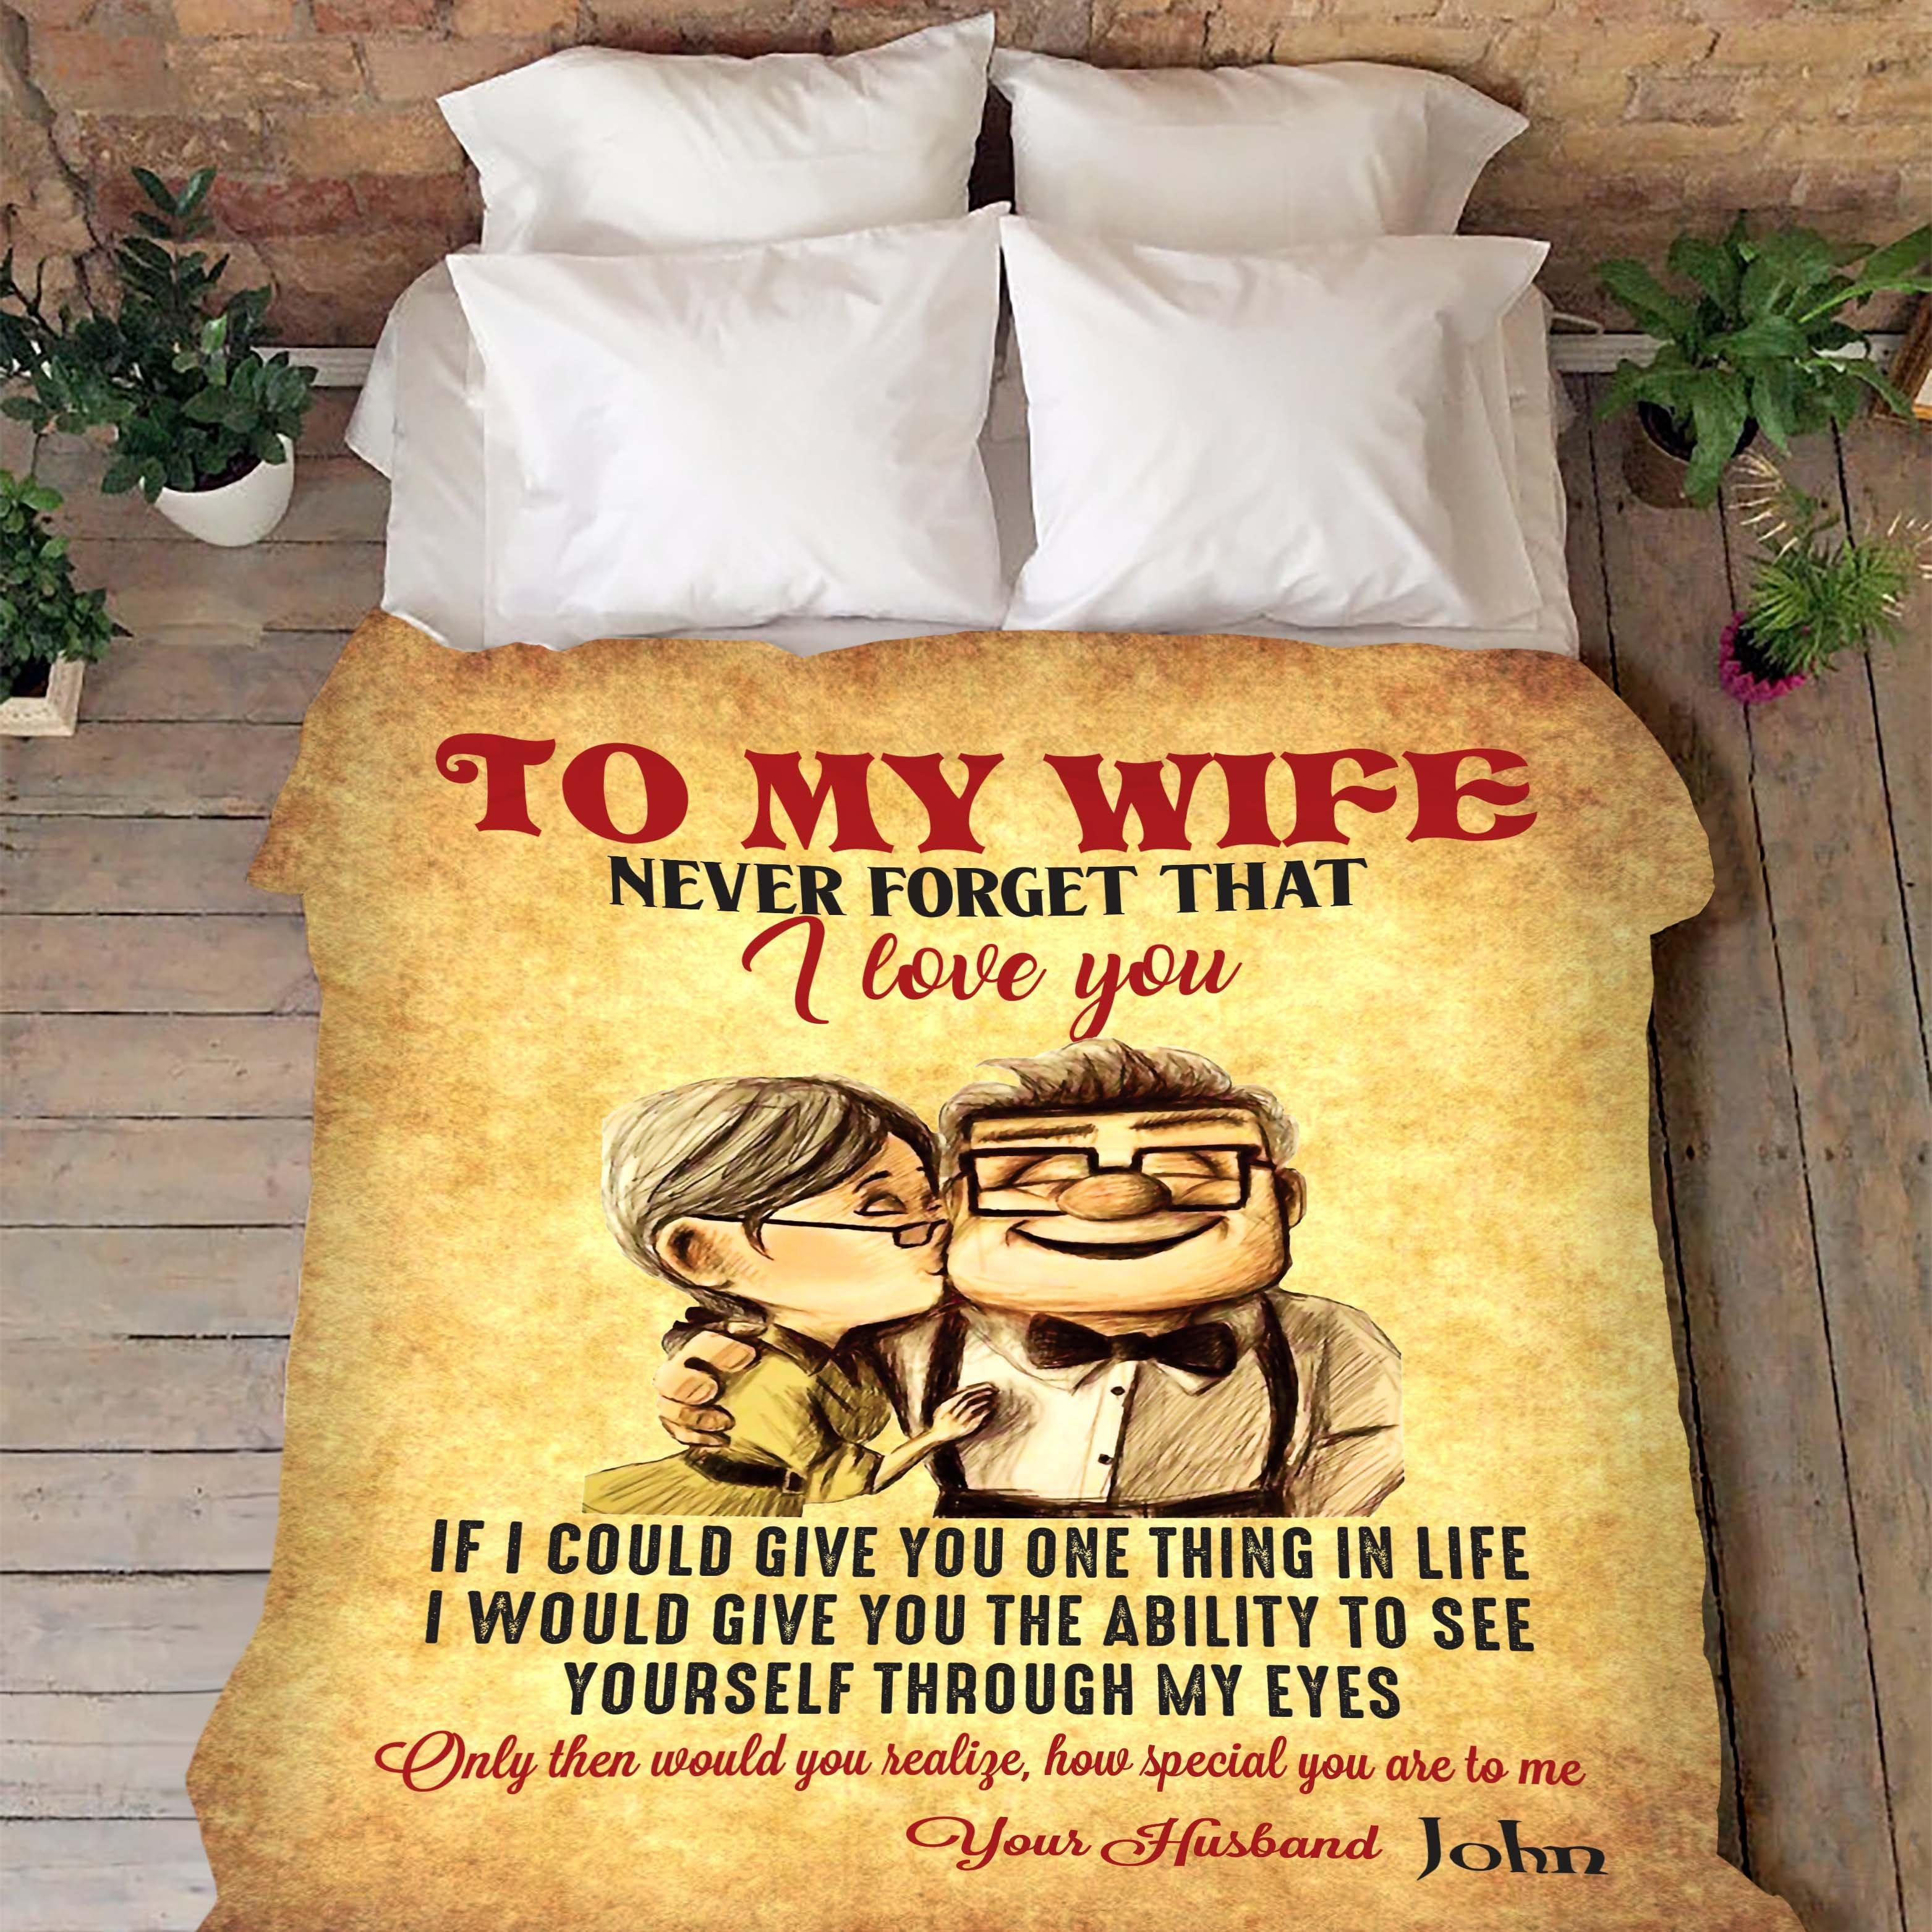 Up movie to my wife never forget that I love you blanket - original